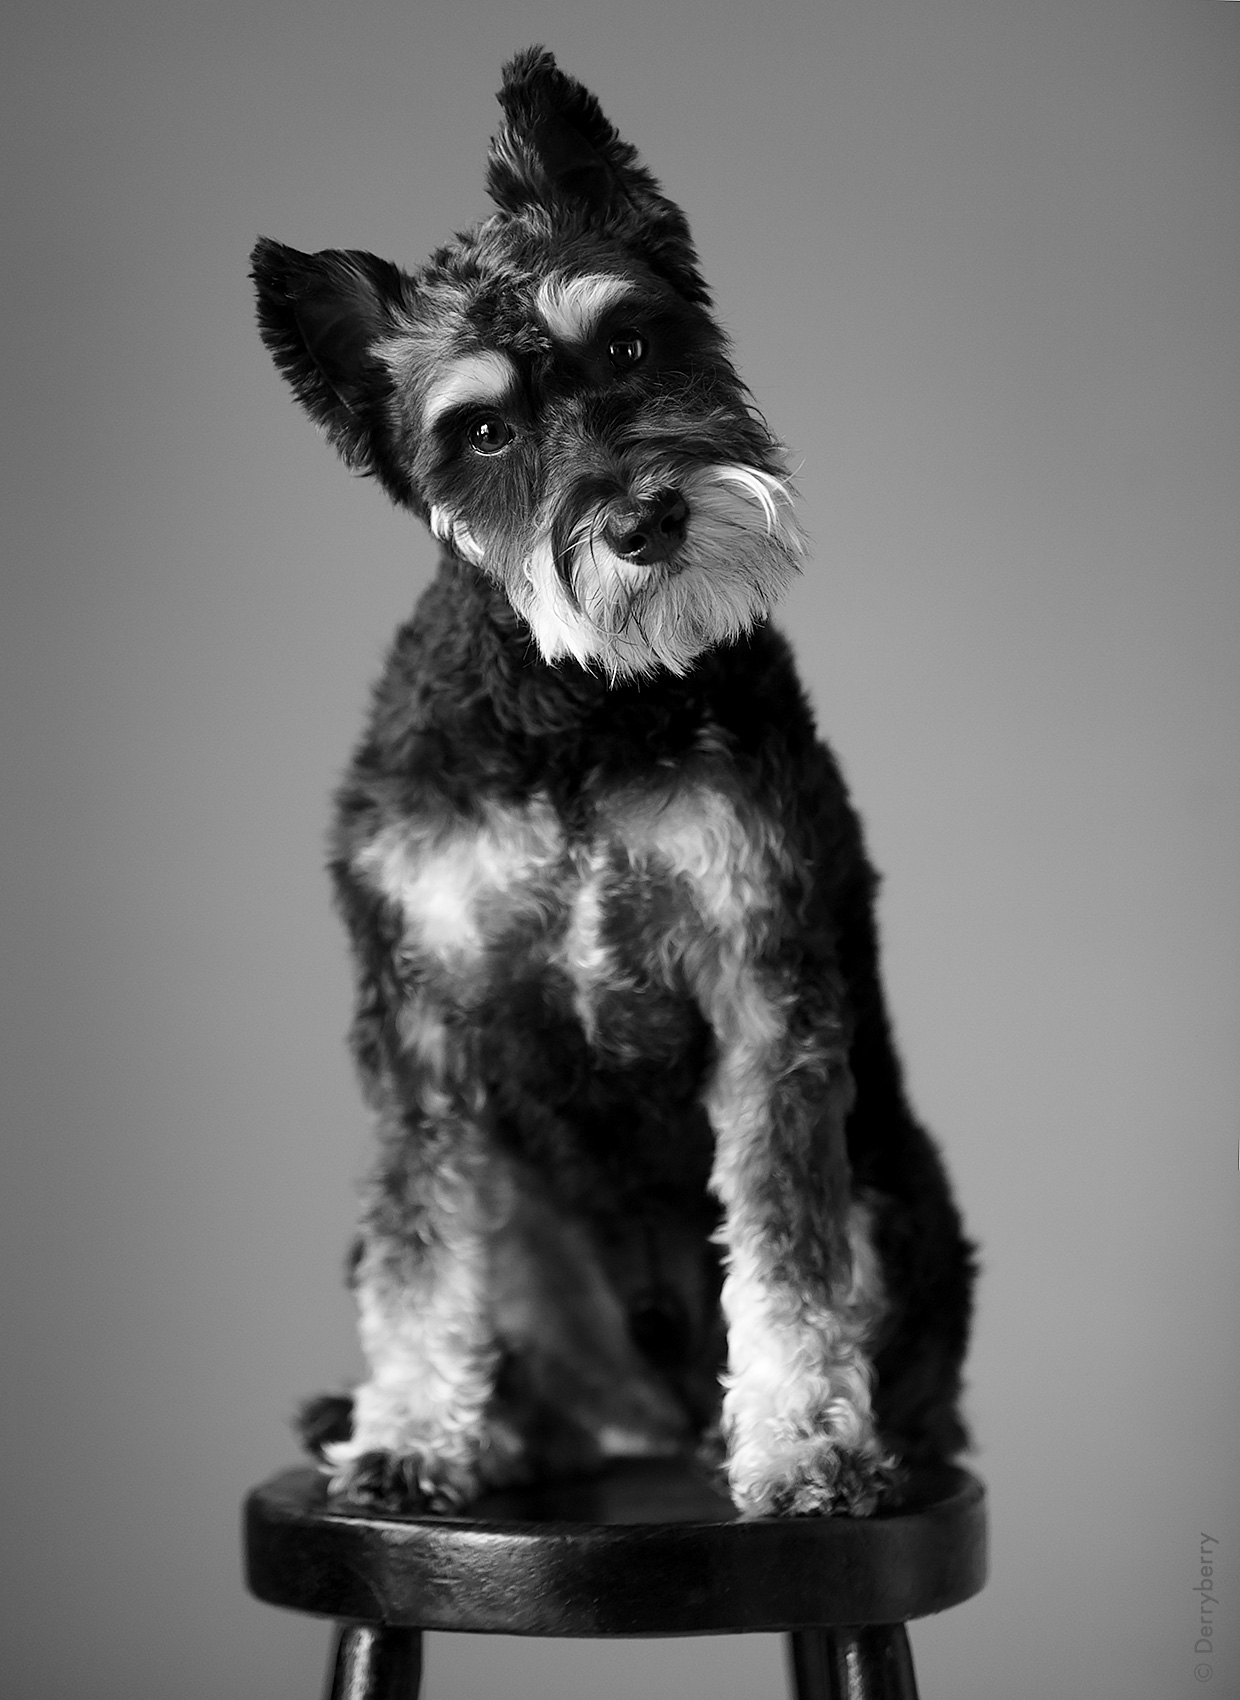 Pet dog portrait of the Peloza dog, a schnauzer sitting on a stool, in the studio,  in Dallas, Texas by photographer John Derryberry Photography